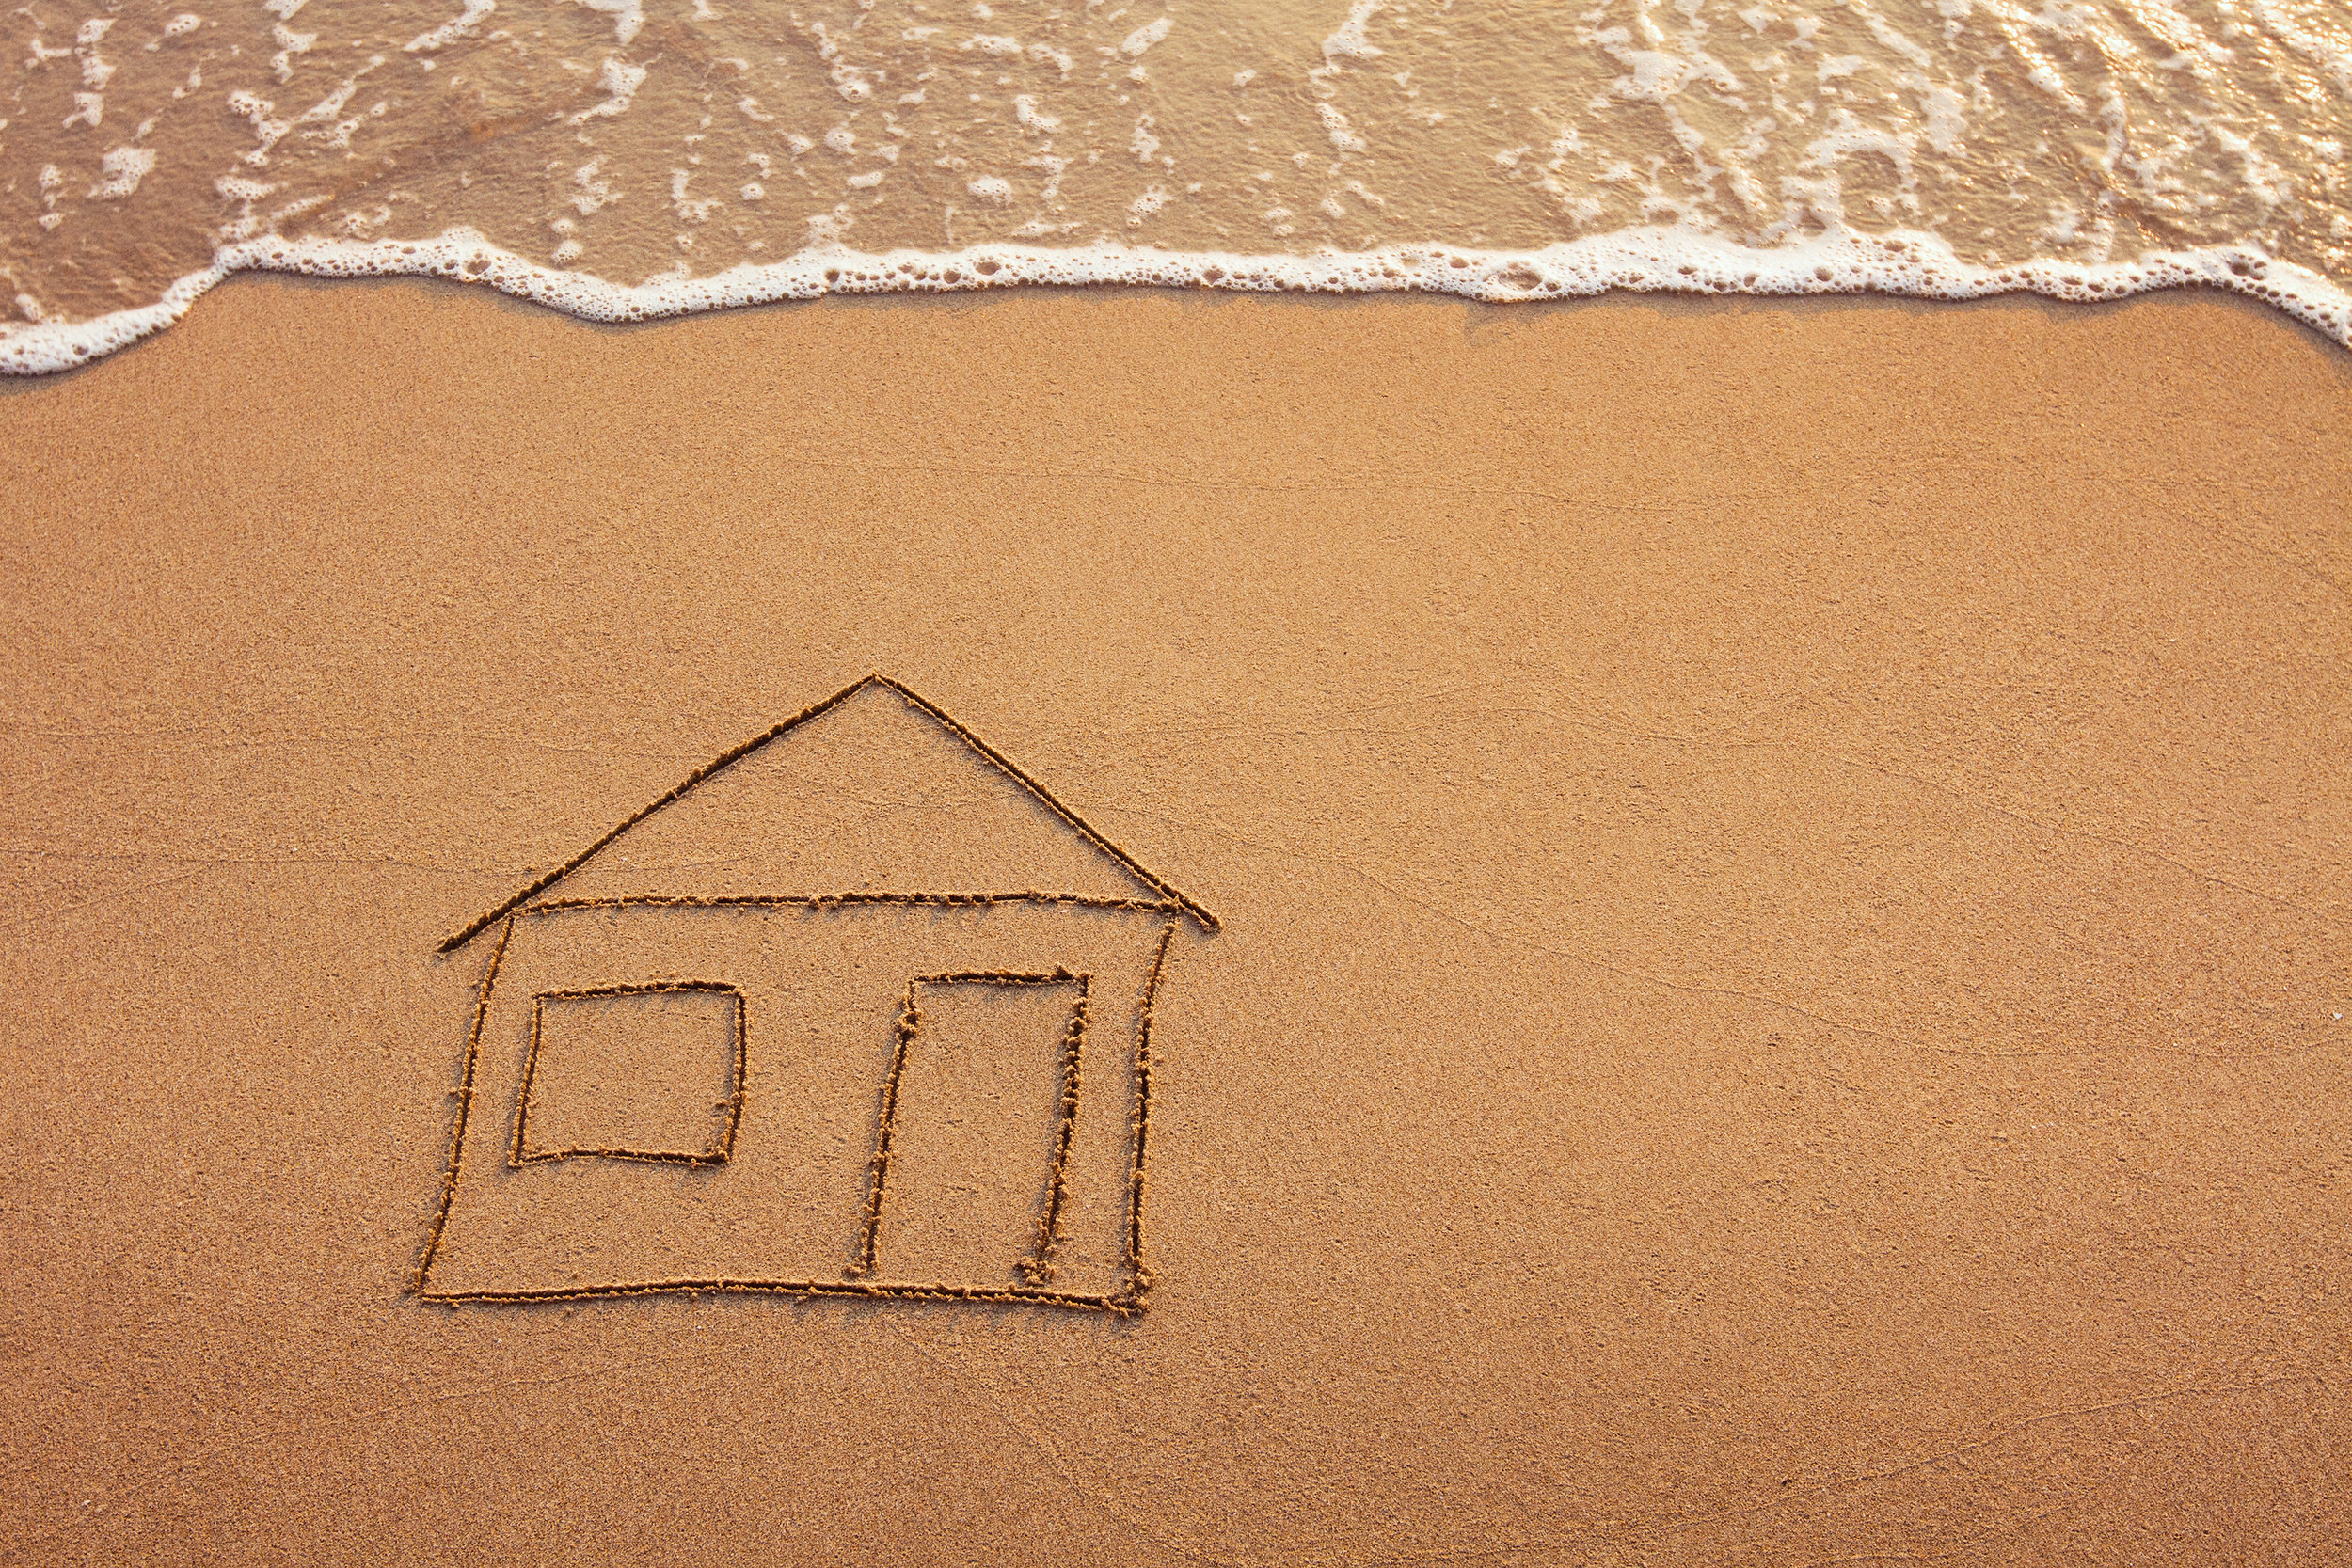 FLOOD INSURANCE - CLICK FOR A QUOTE